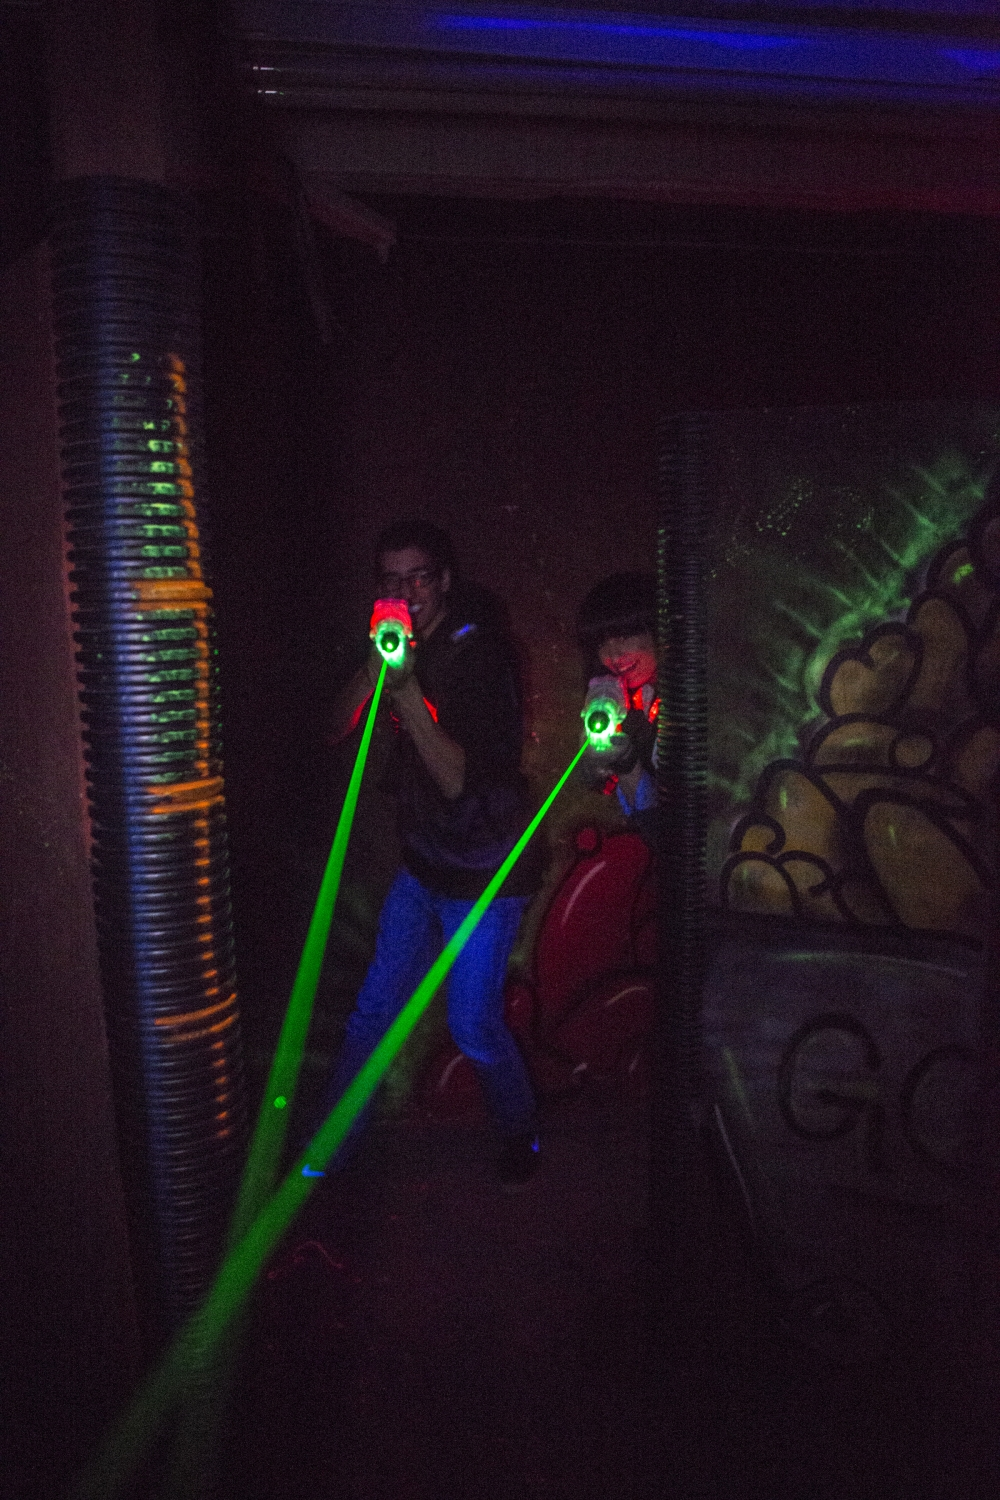 Flags & Wheels Lazer Tag Featured Image